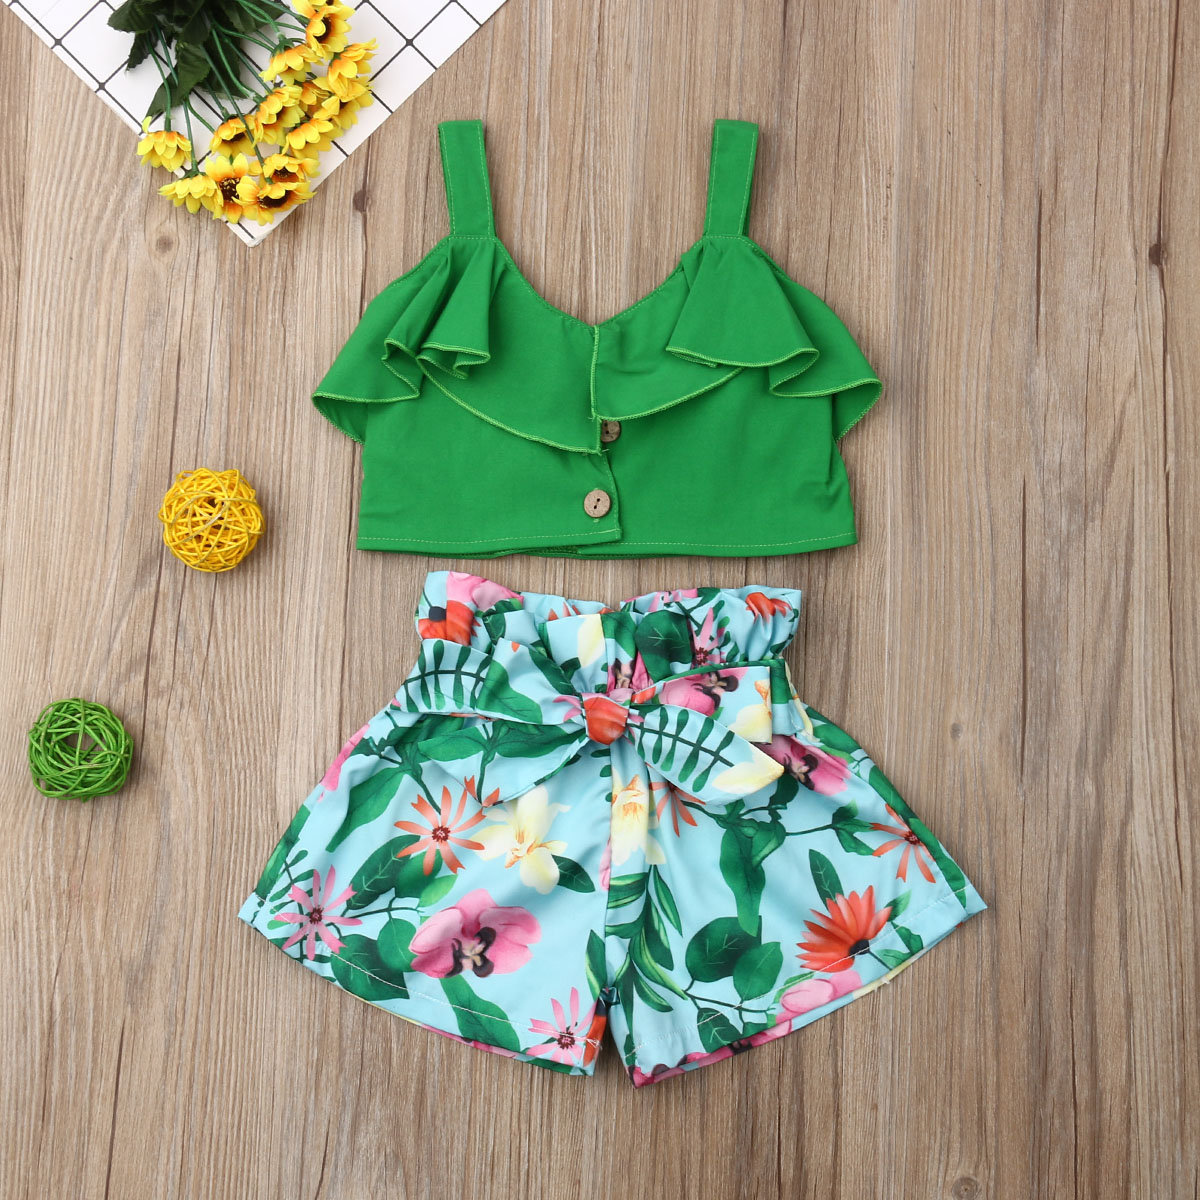 Pudcoco Summer Toddler Baby Girl Clothes Sleeveless Strap Ruffle Crop Tops Flower Print Short Pants 2Pcs Outfits Clothes